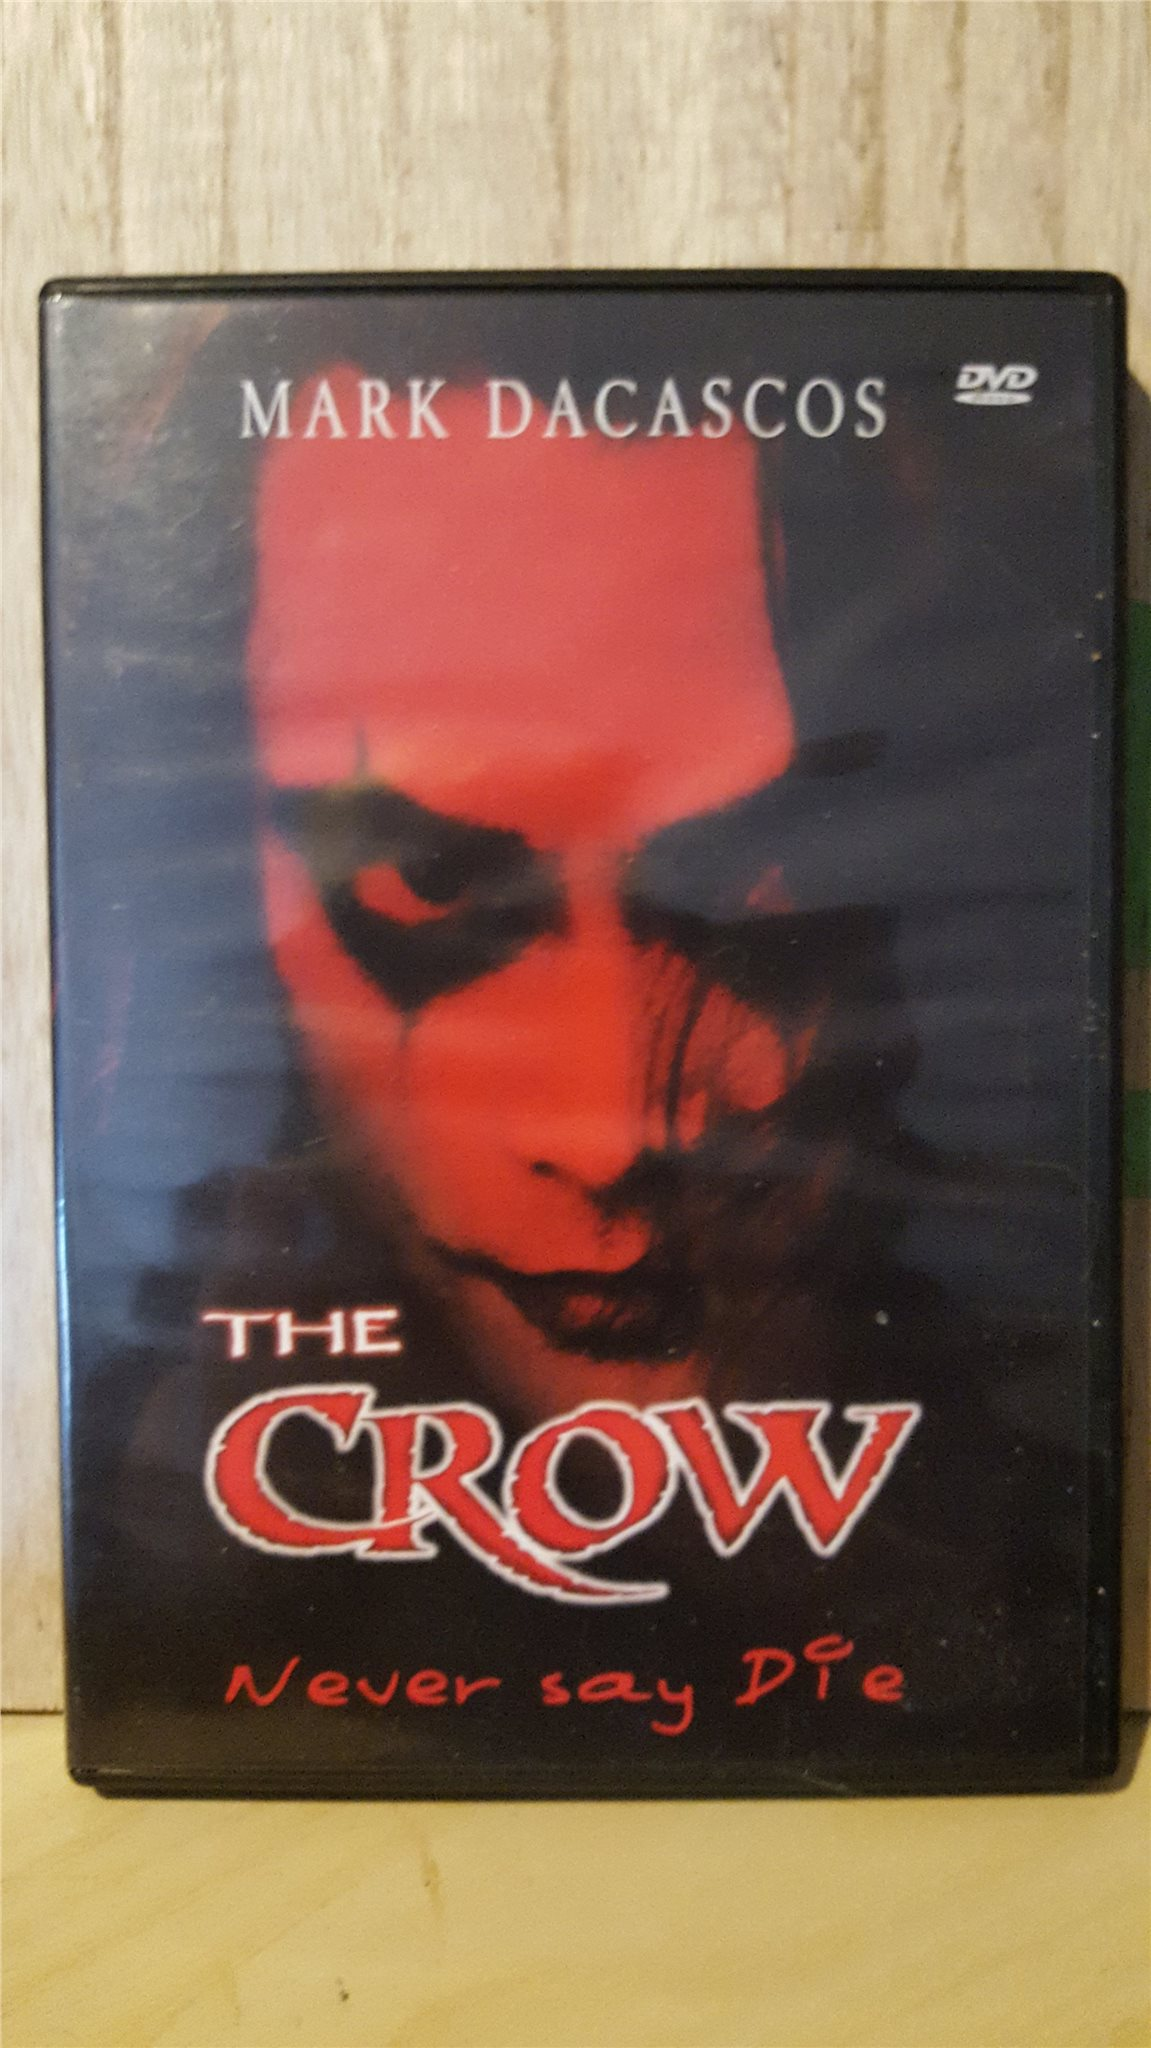 Crow - Never say die - 1998 - Mark Dacascos och Marc Gomes